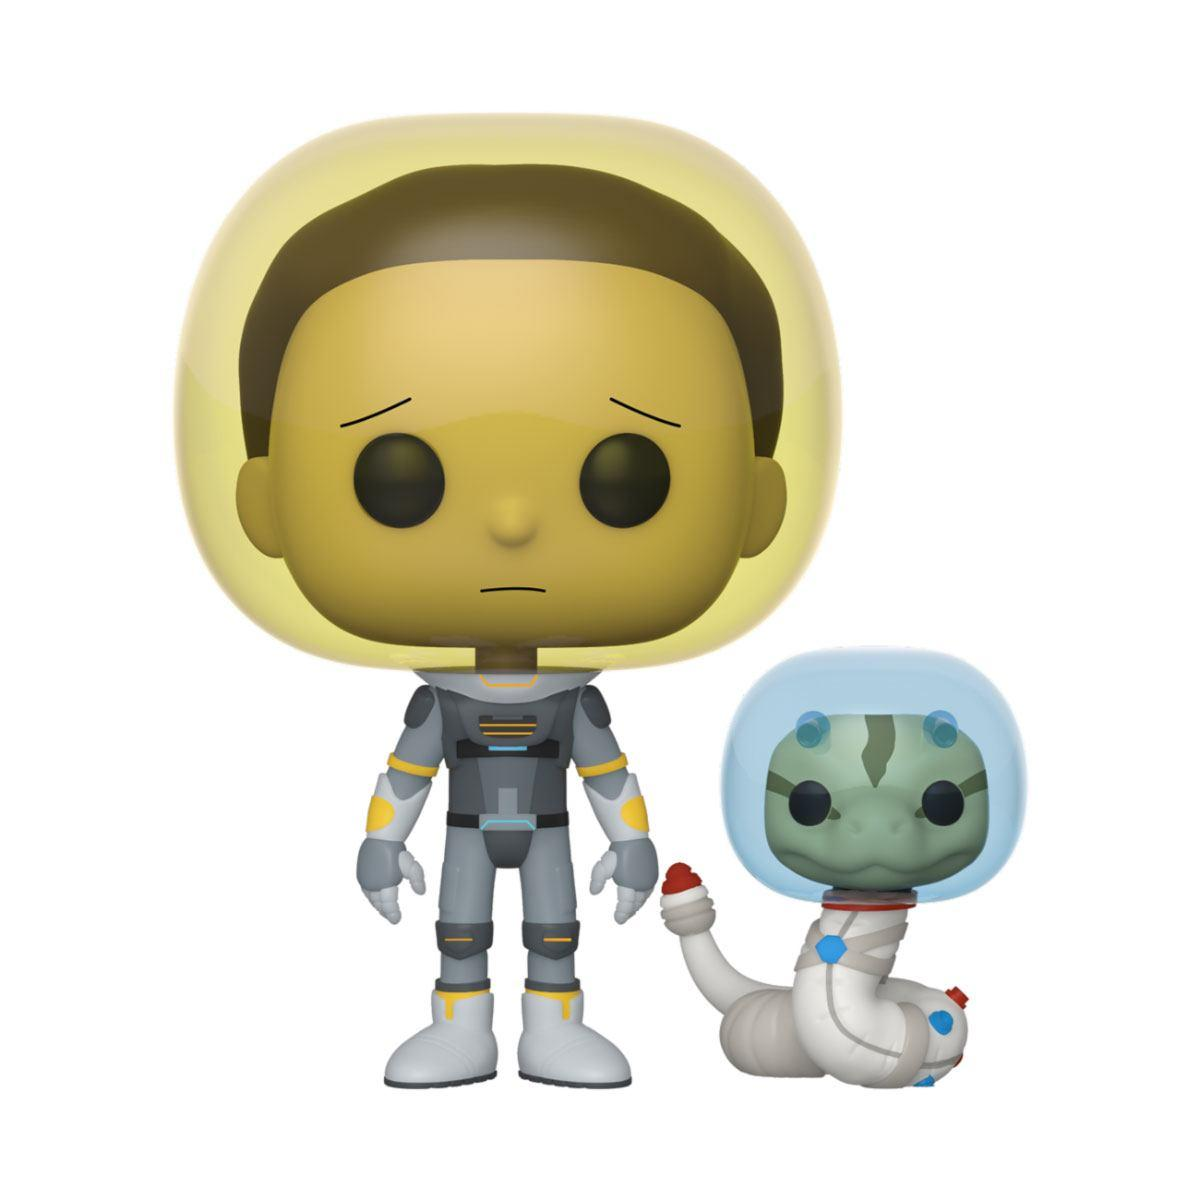 Rick morty pop animation vinyl figurine space suit morty 9 cm